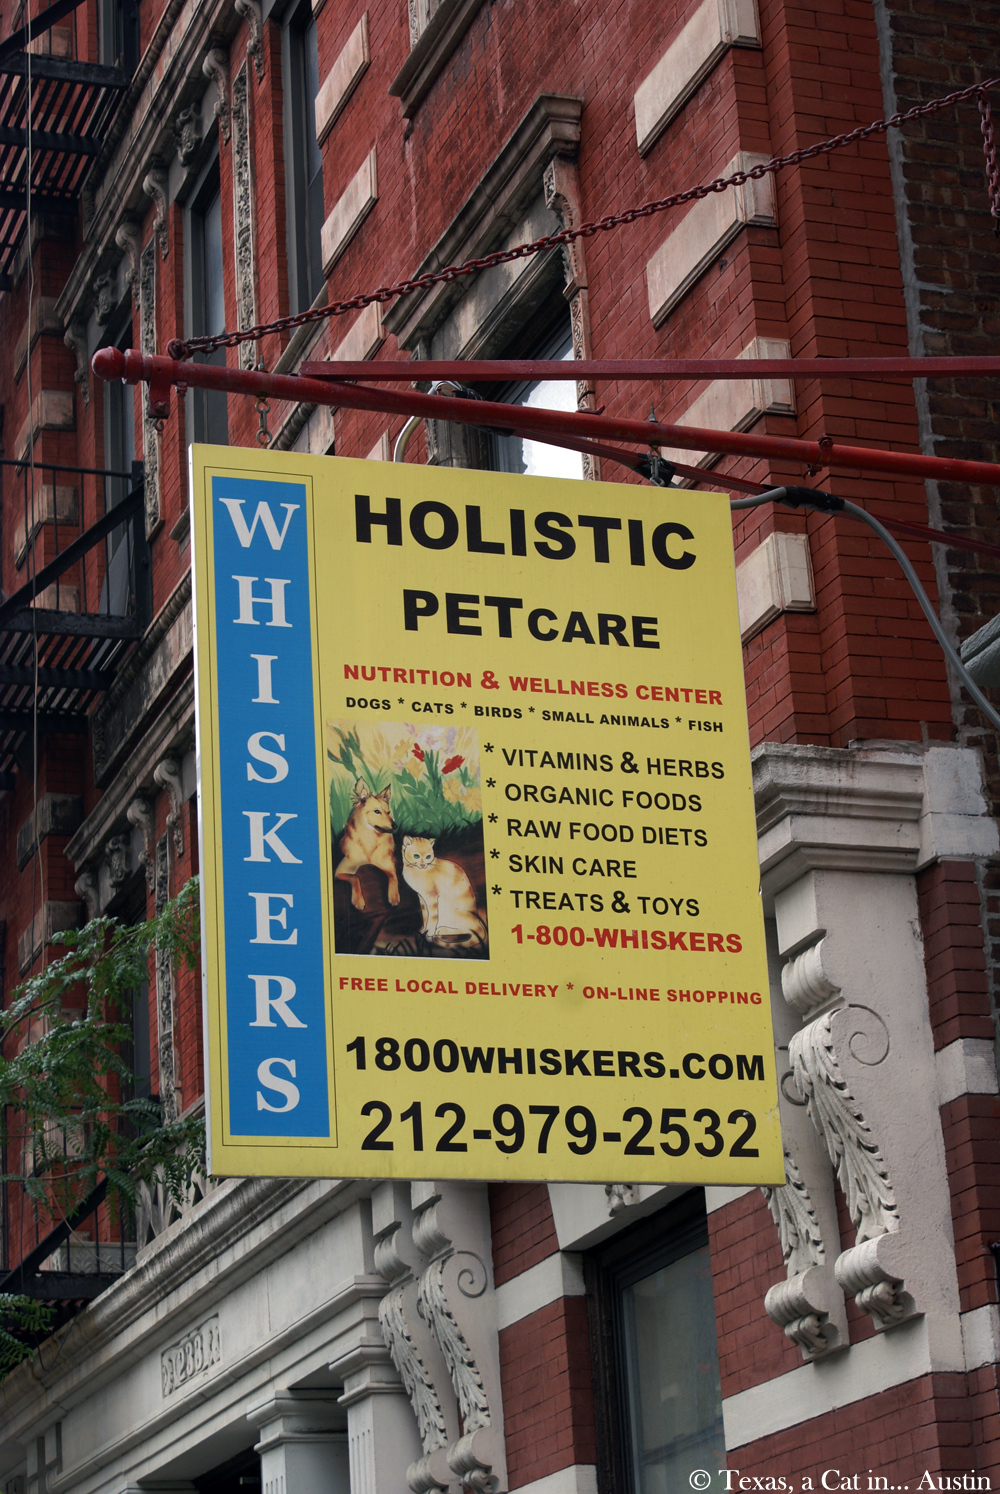 Whiskers Holistic Pet Care | Texas, a cat in... Austin